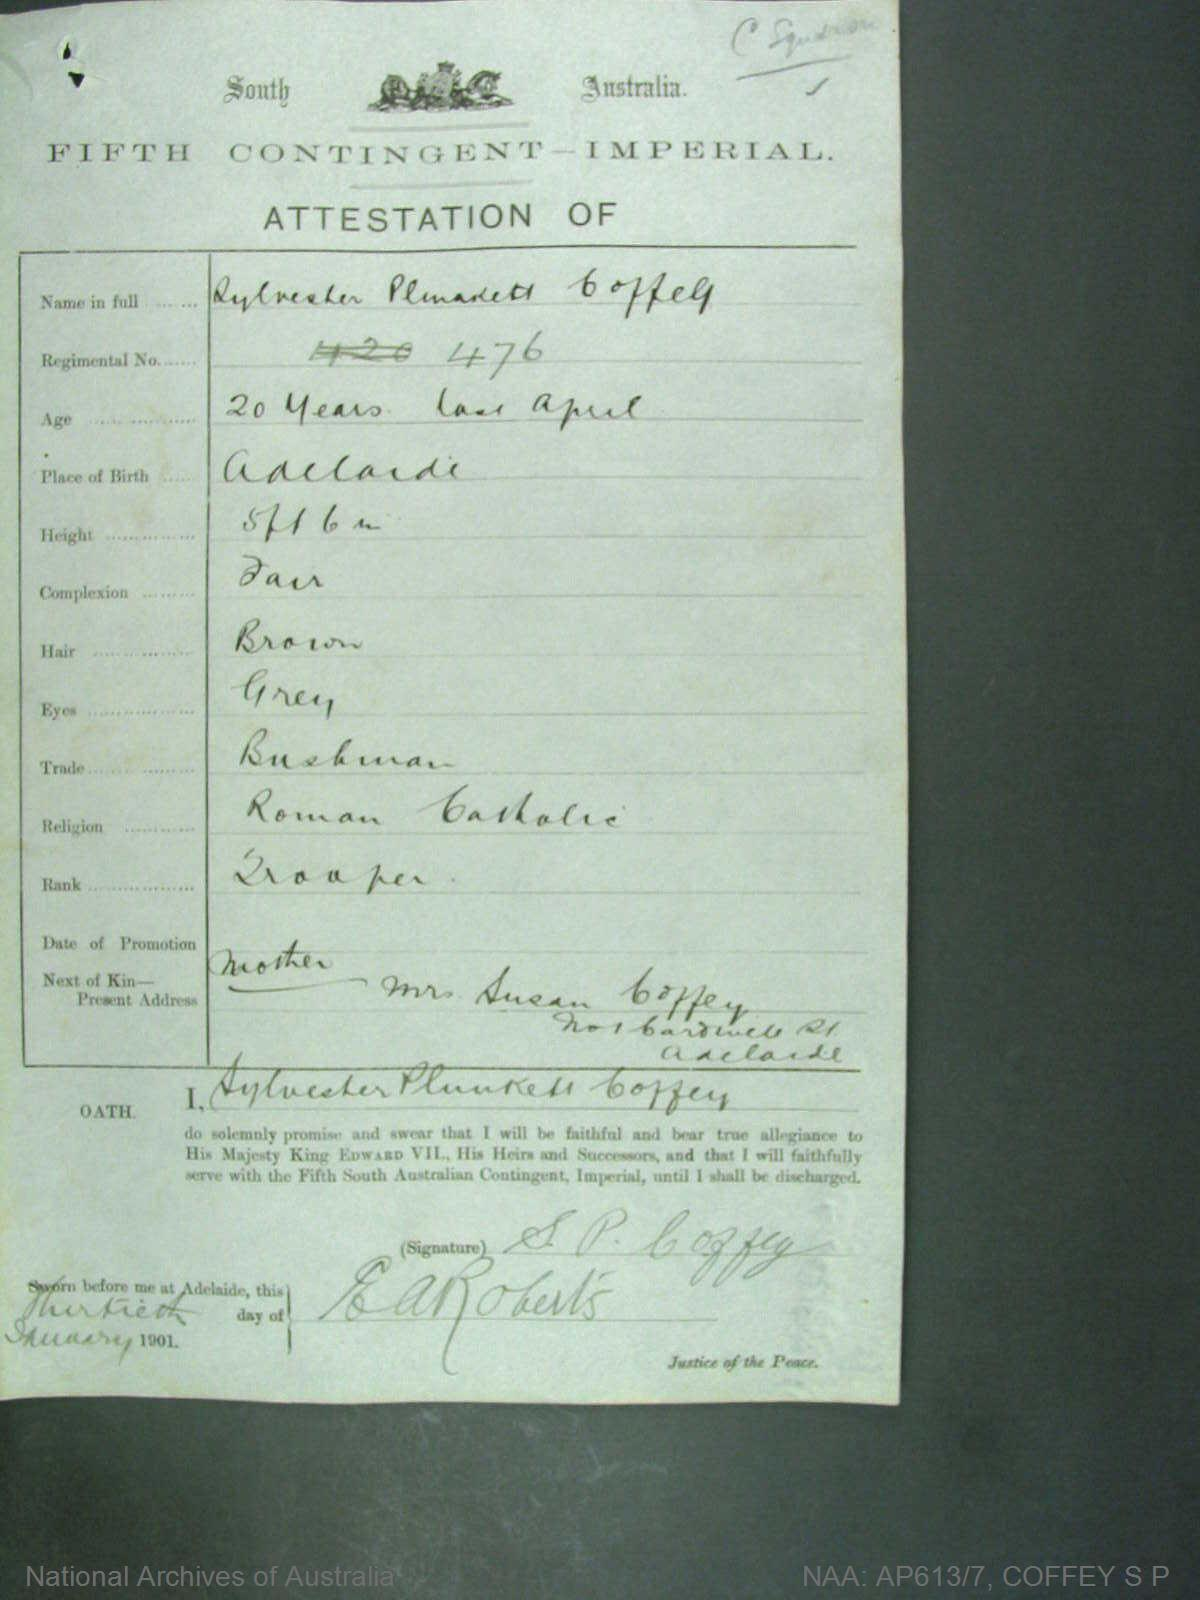 Coffey, Sylvester Plunkett regimental number 476 South Australia fifth contingent imperial -  attestation of